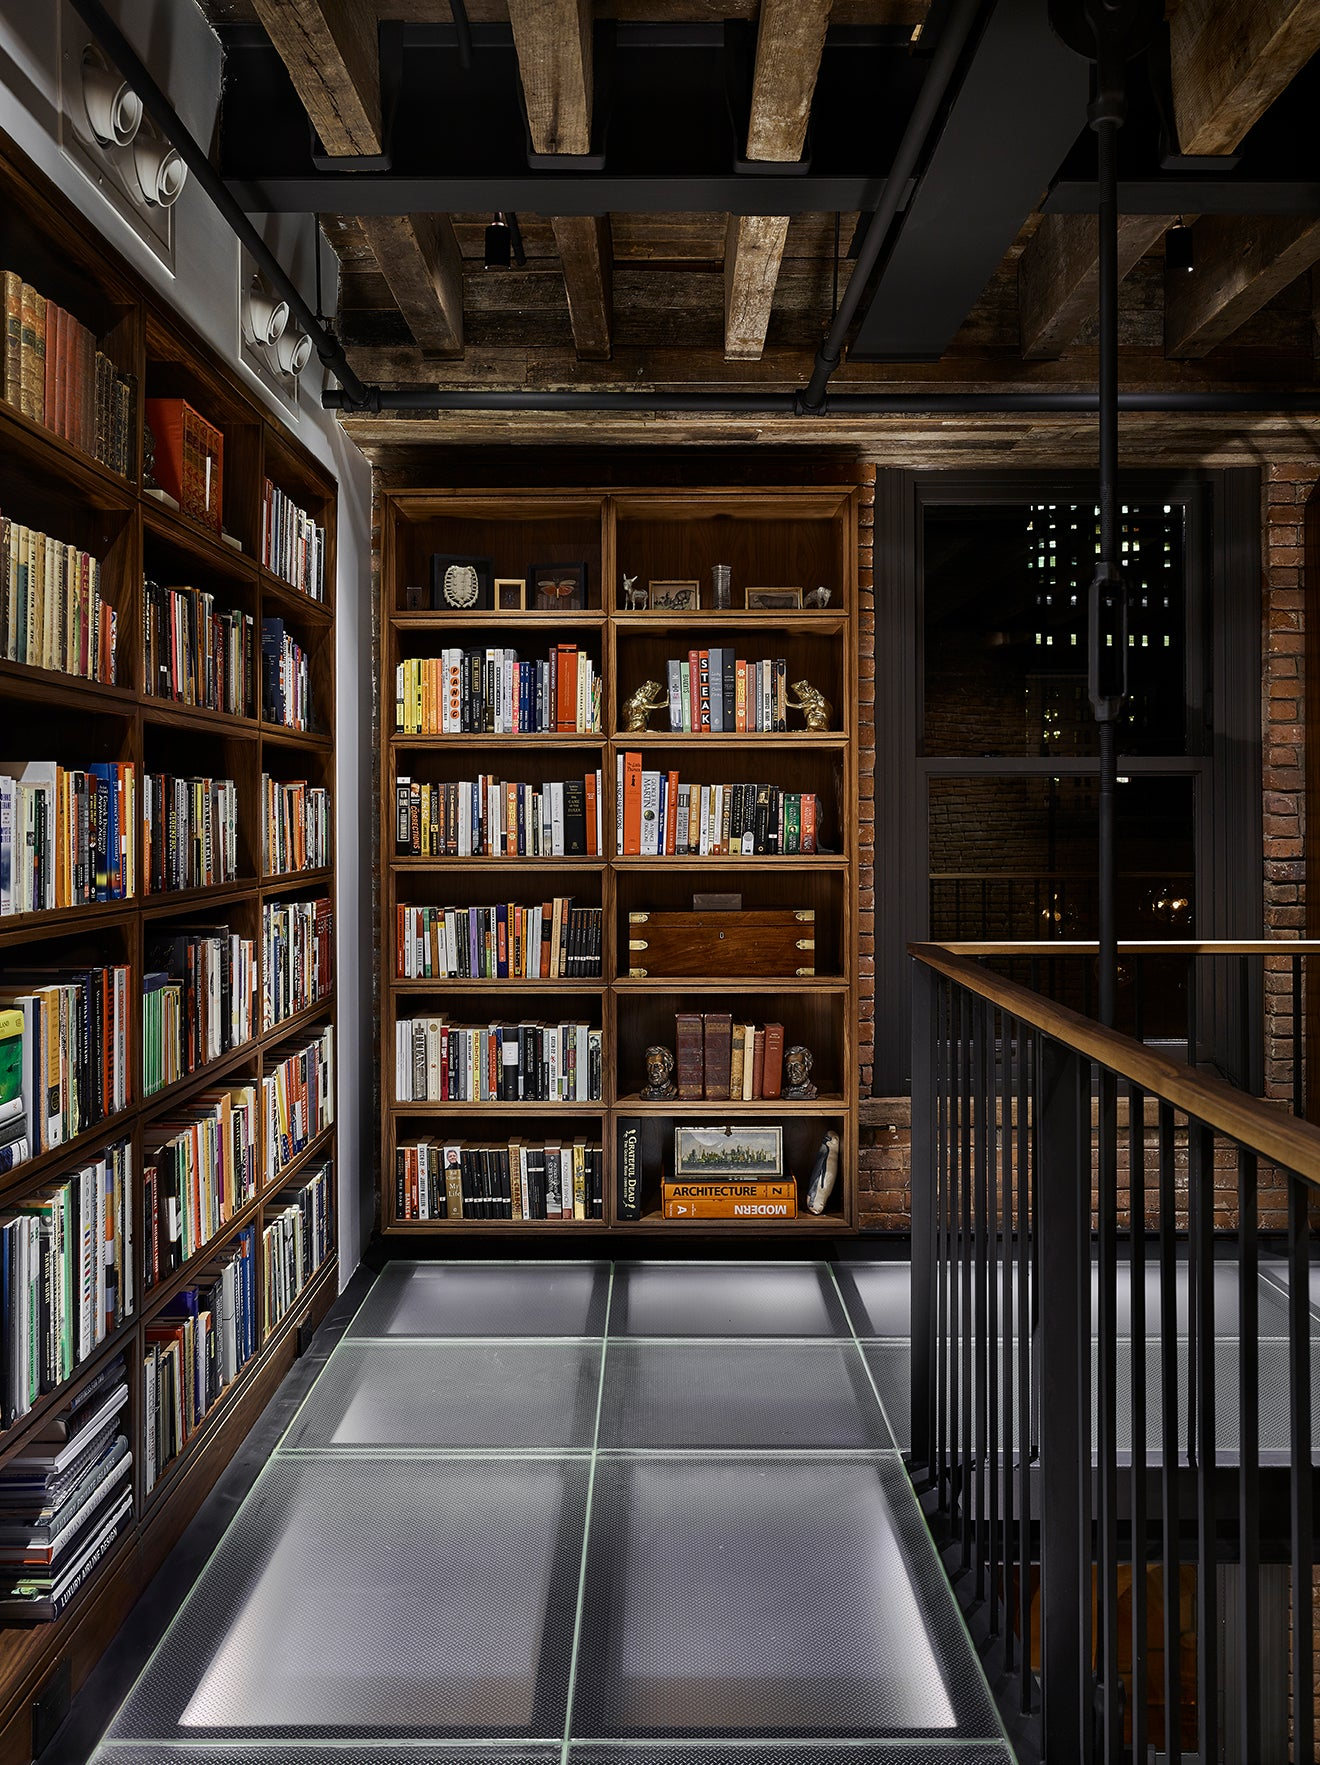 Galleried library industrial warehouse apartment New York